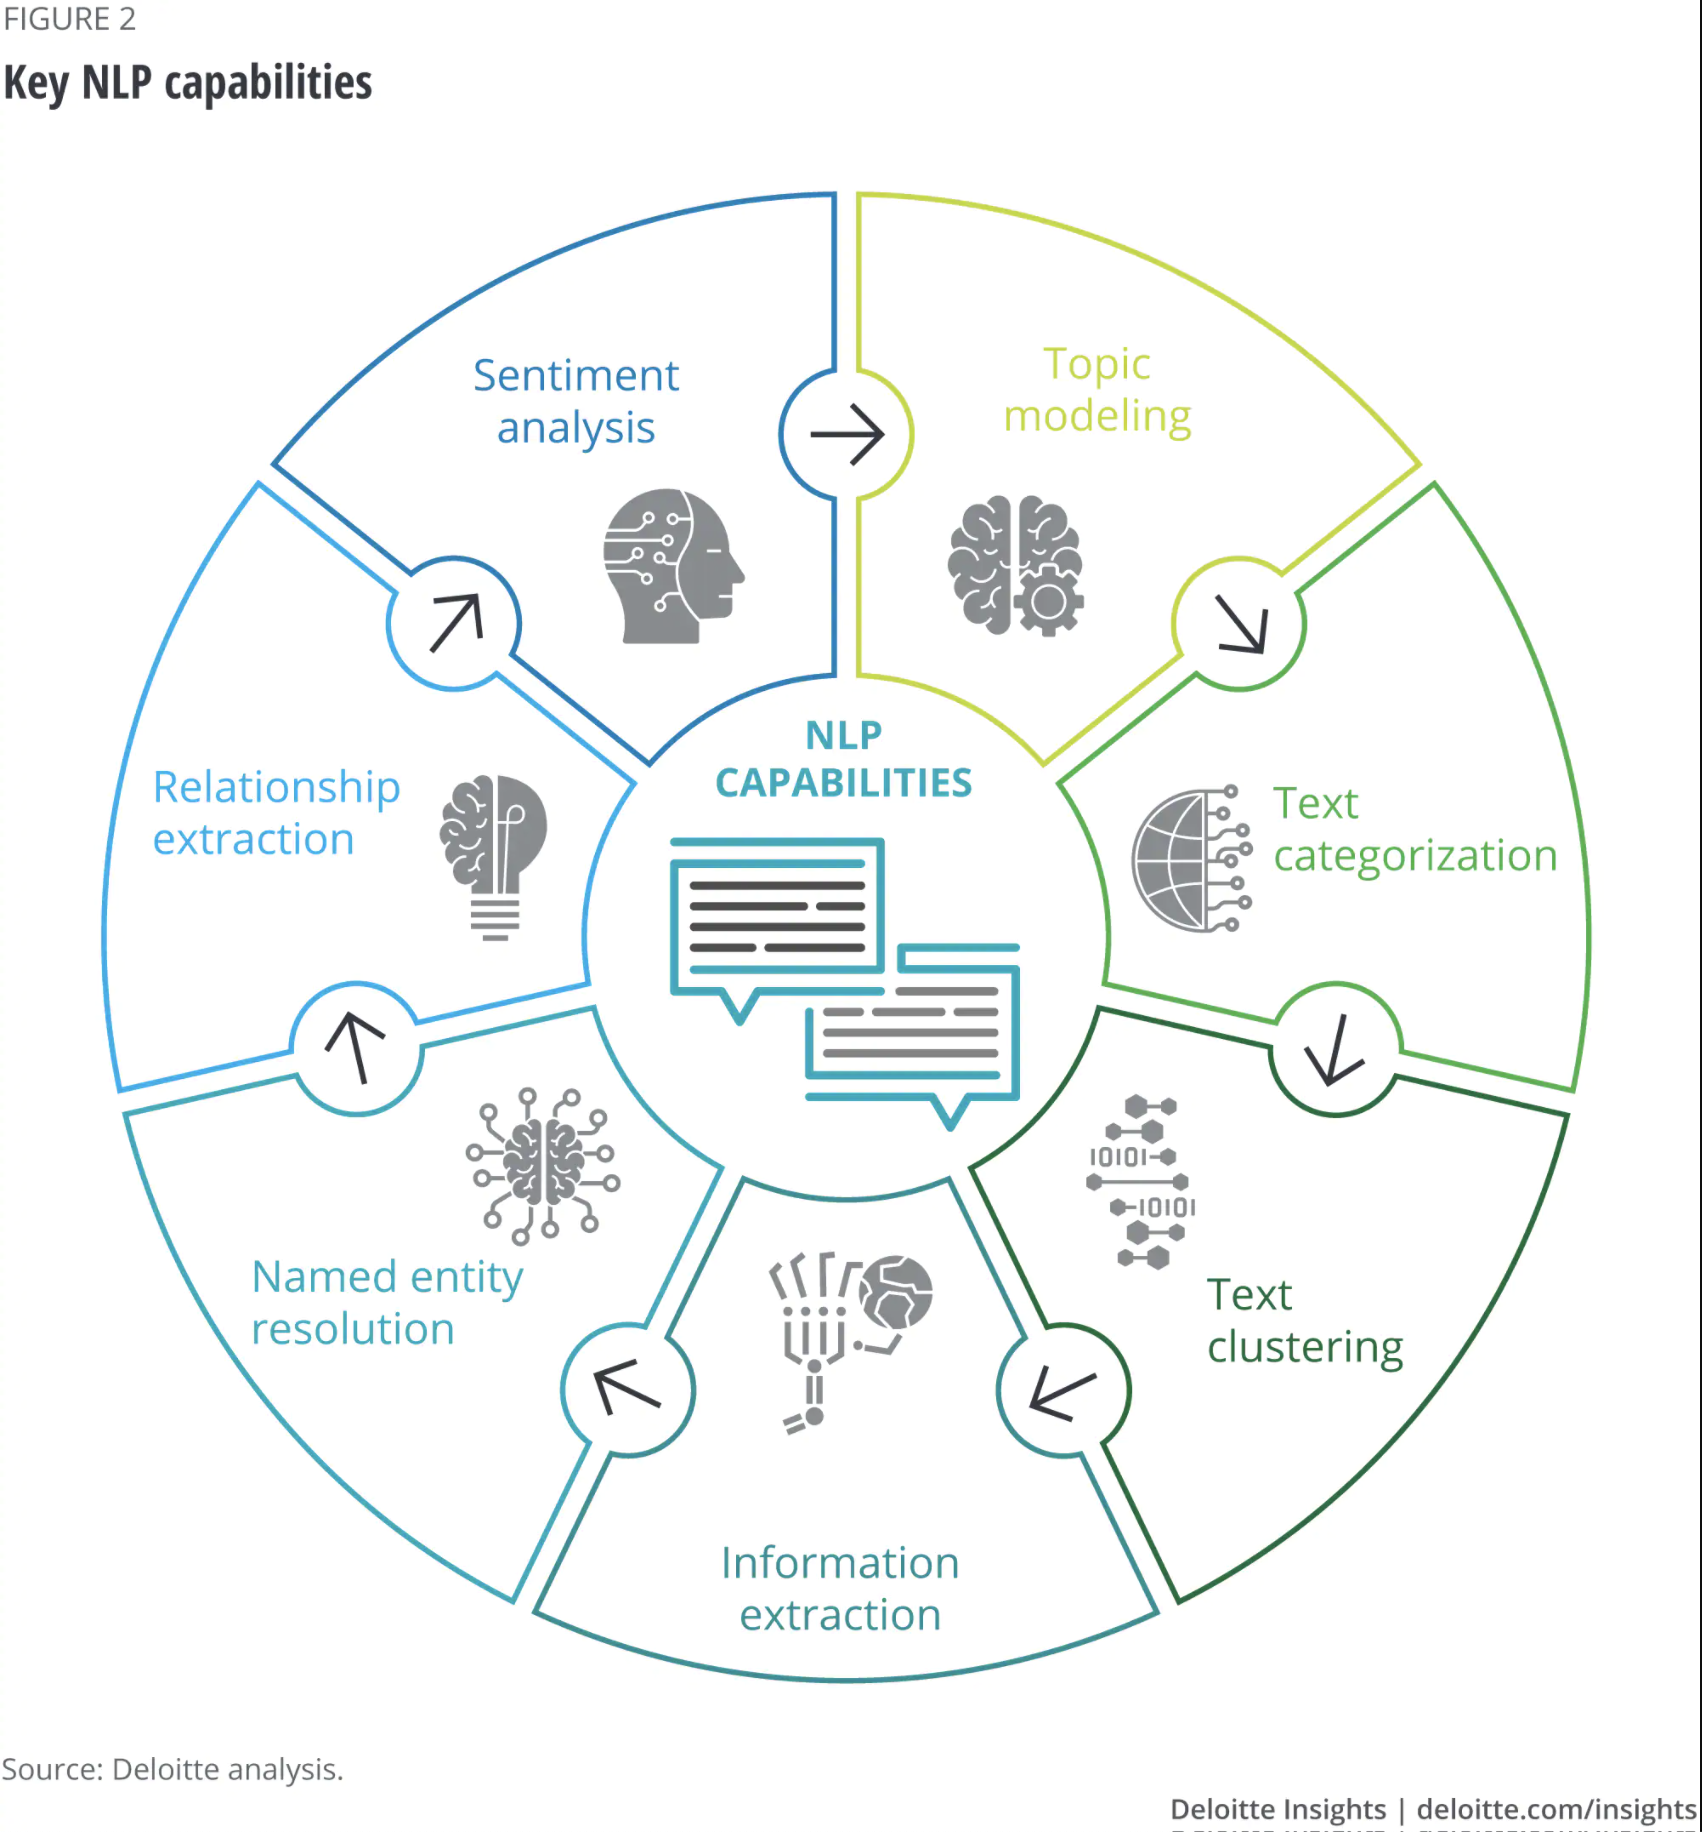 Deloitte diagram showing the key capabilities of NLP.